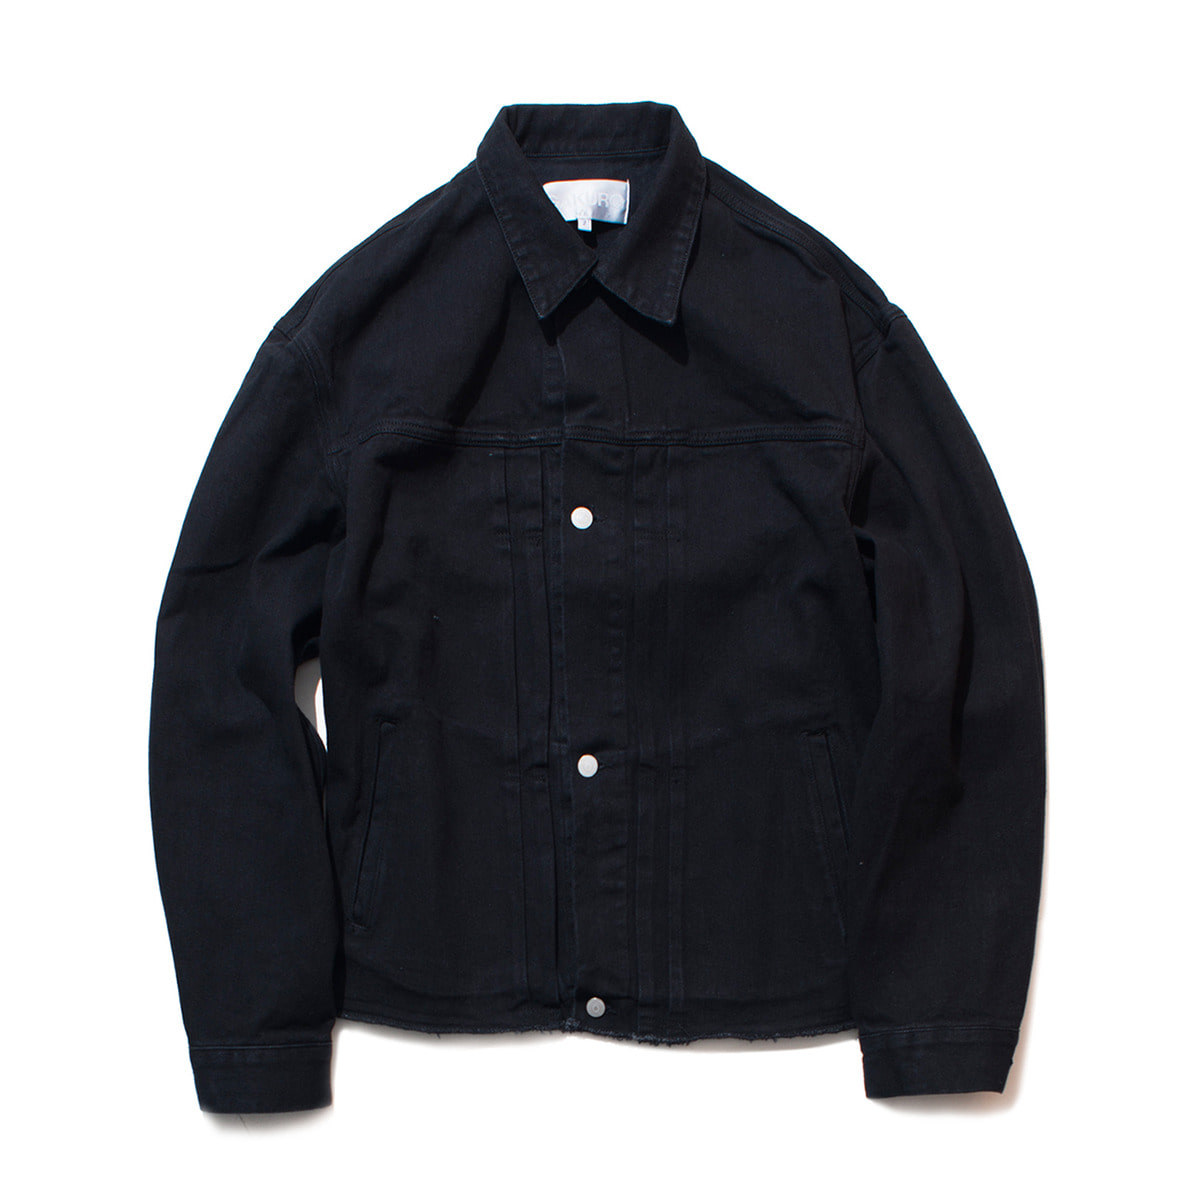 [GAKURO] DENIM JACKET 'WASHED BLACK'